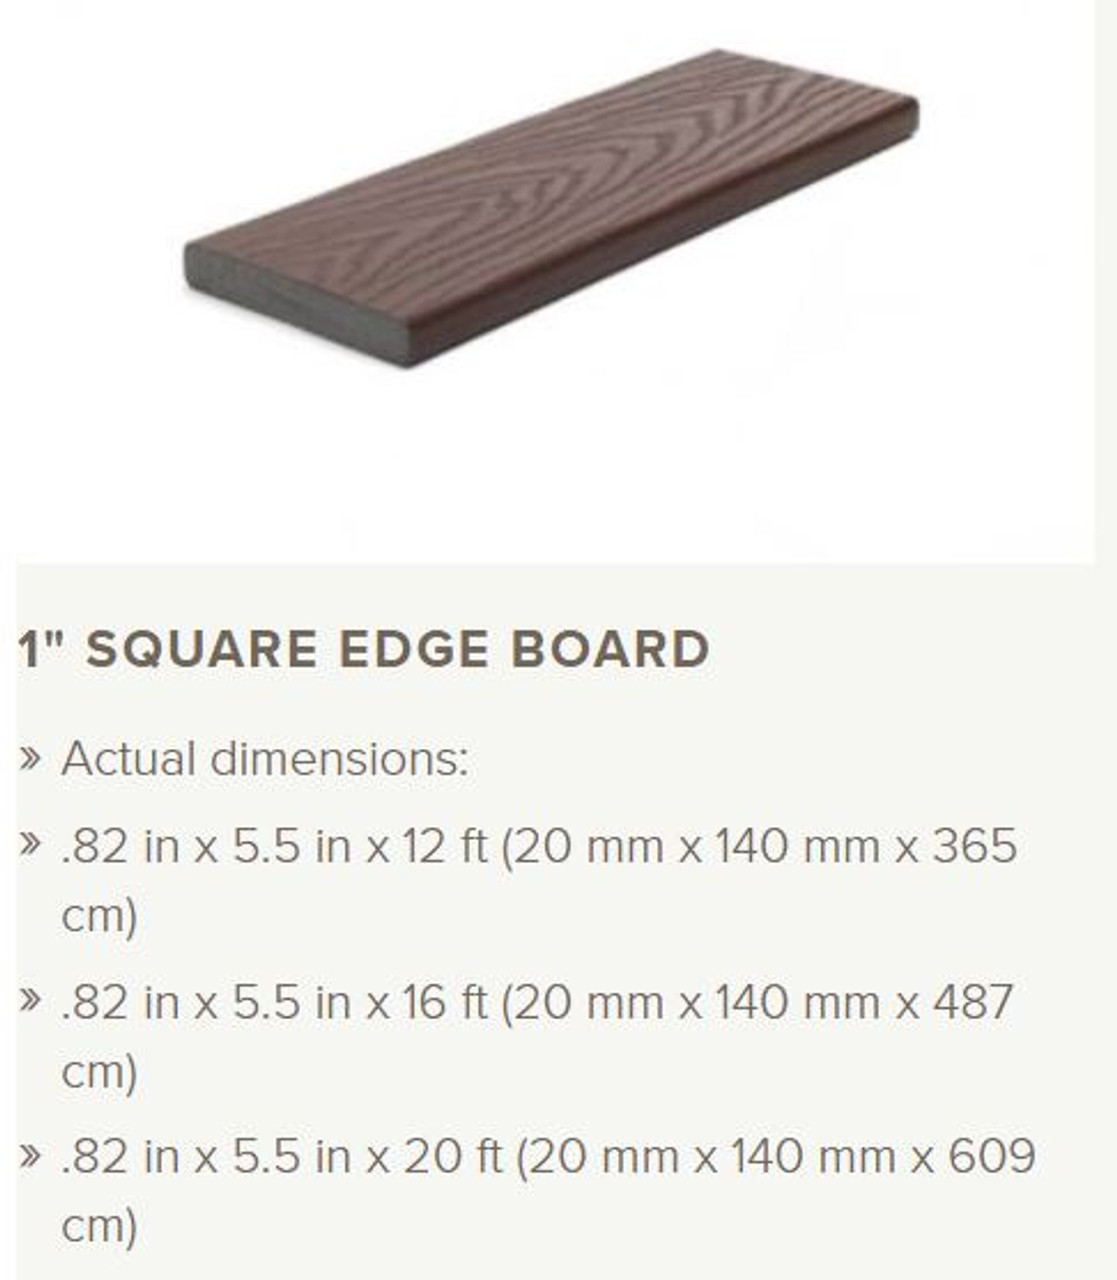 Trex Select Non-Grooved Edge Decking Profile